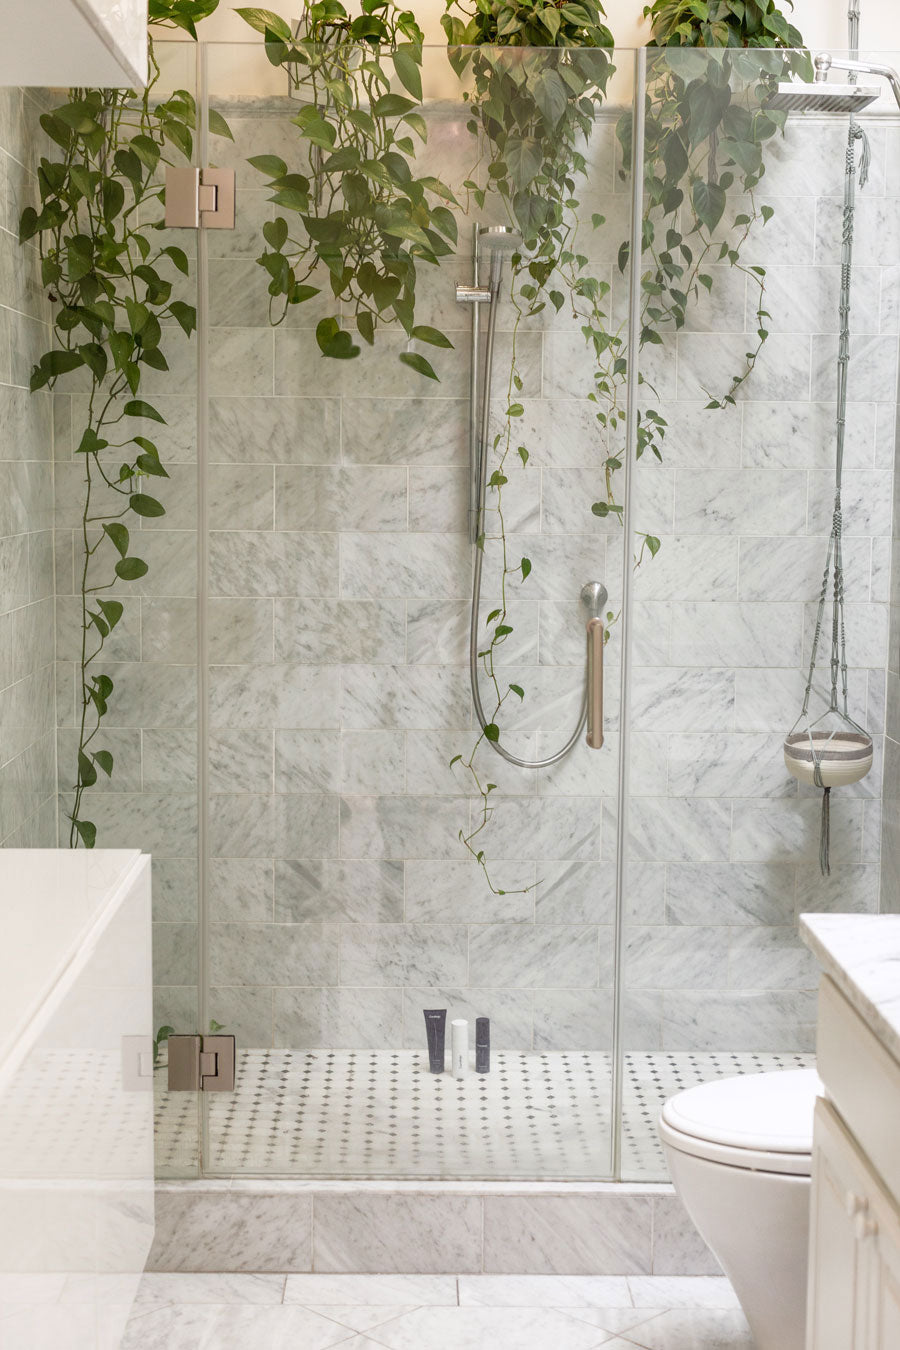 Keep your Calacatta Gold Marble Shower Tiles looking like new with these tips!